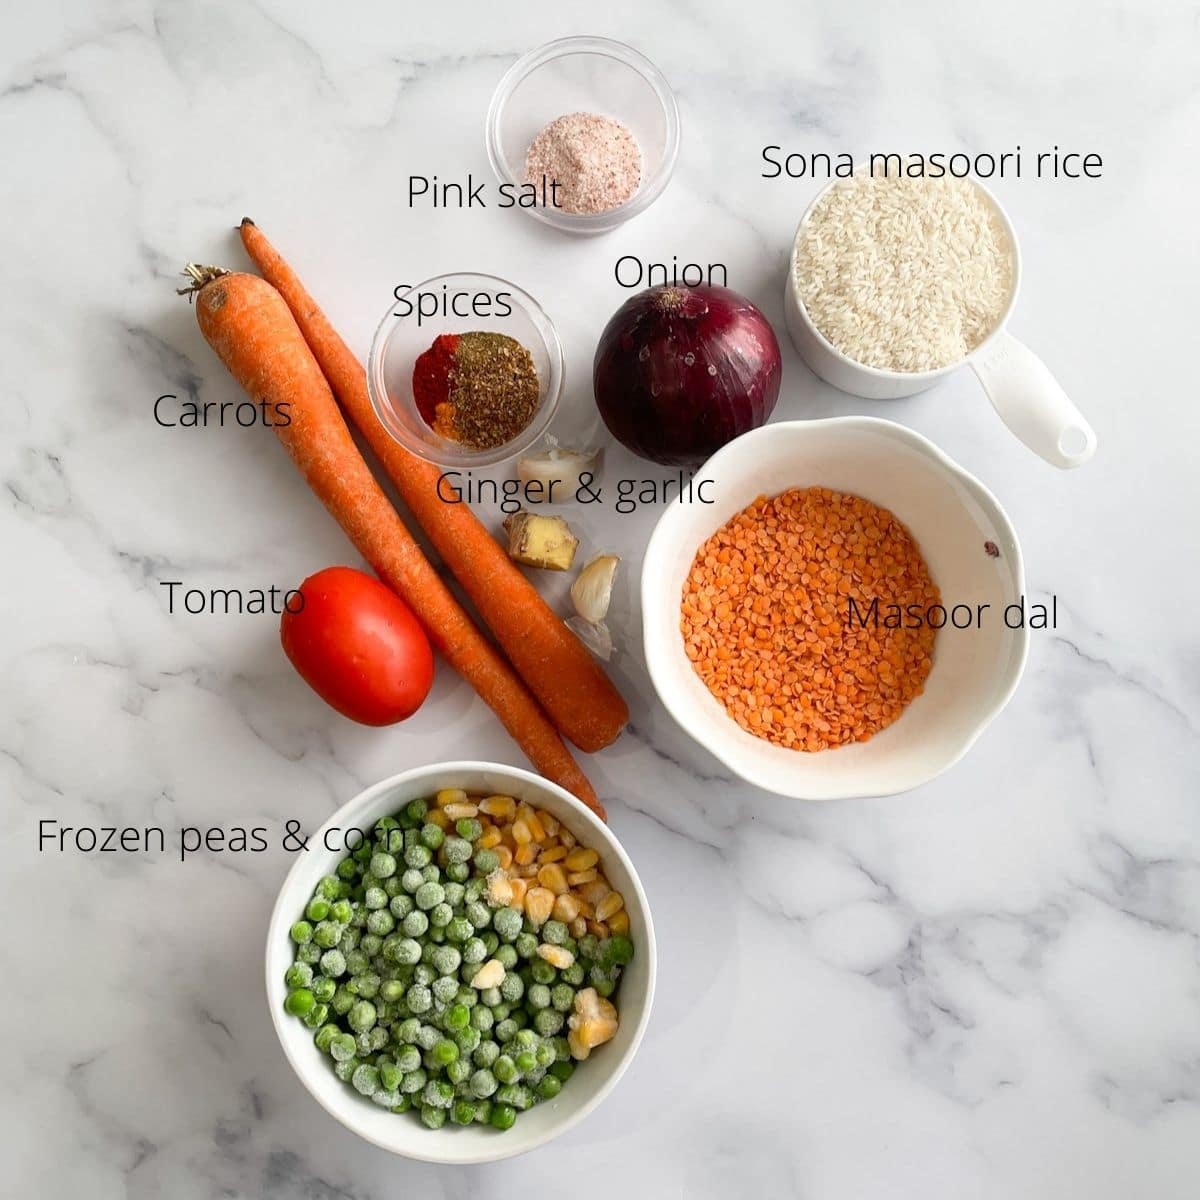 Khichdi ingredients are on the table like peas, corn, carrots, rice and lentils